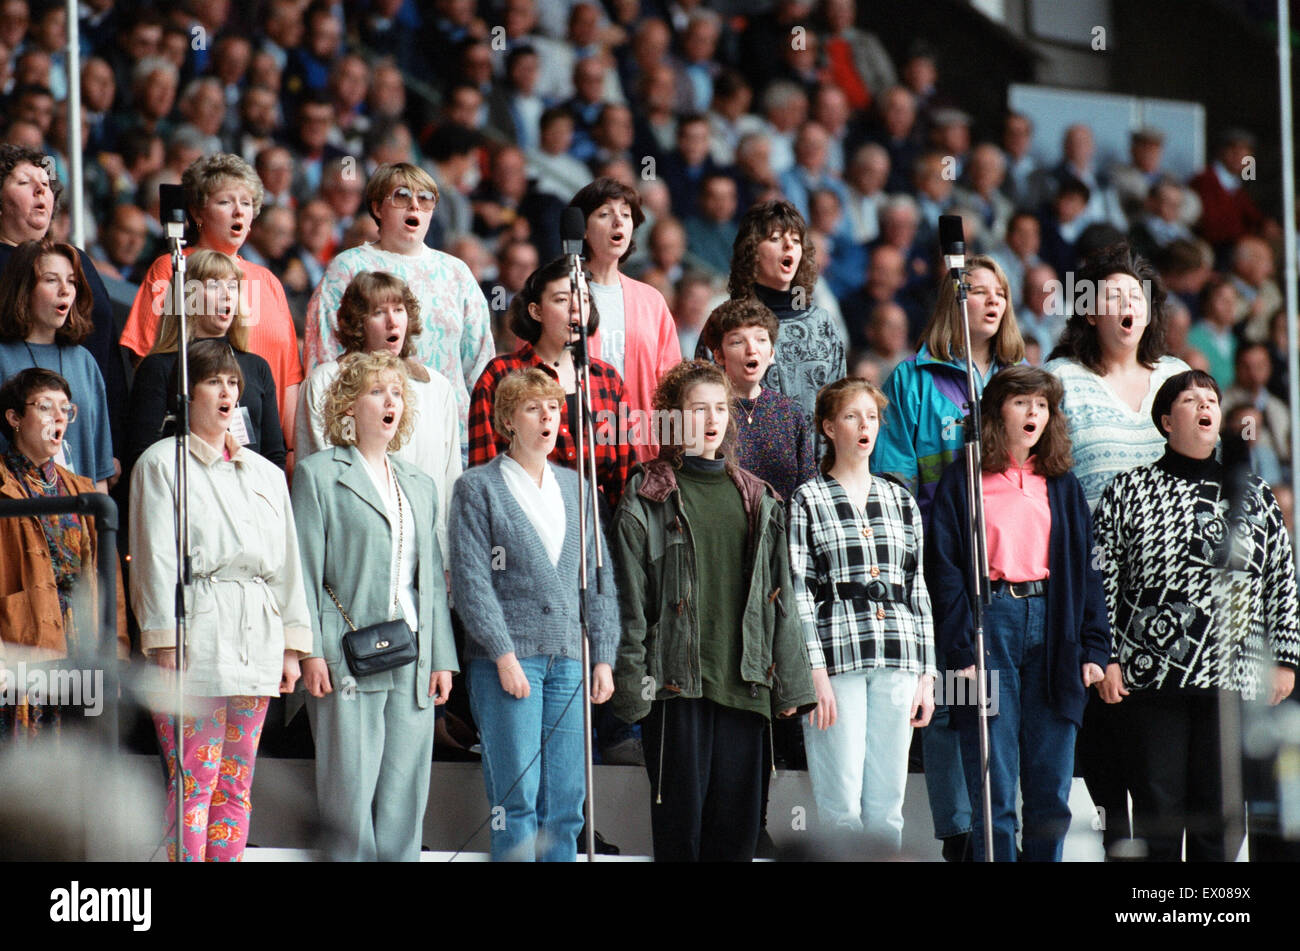 Cor World Choir concert at Cardiff Arms Park, 29th May 1993. - Stock Image